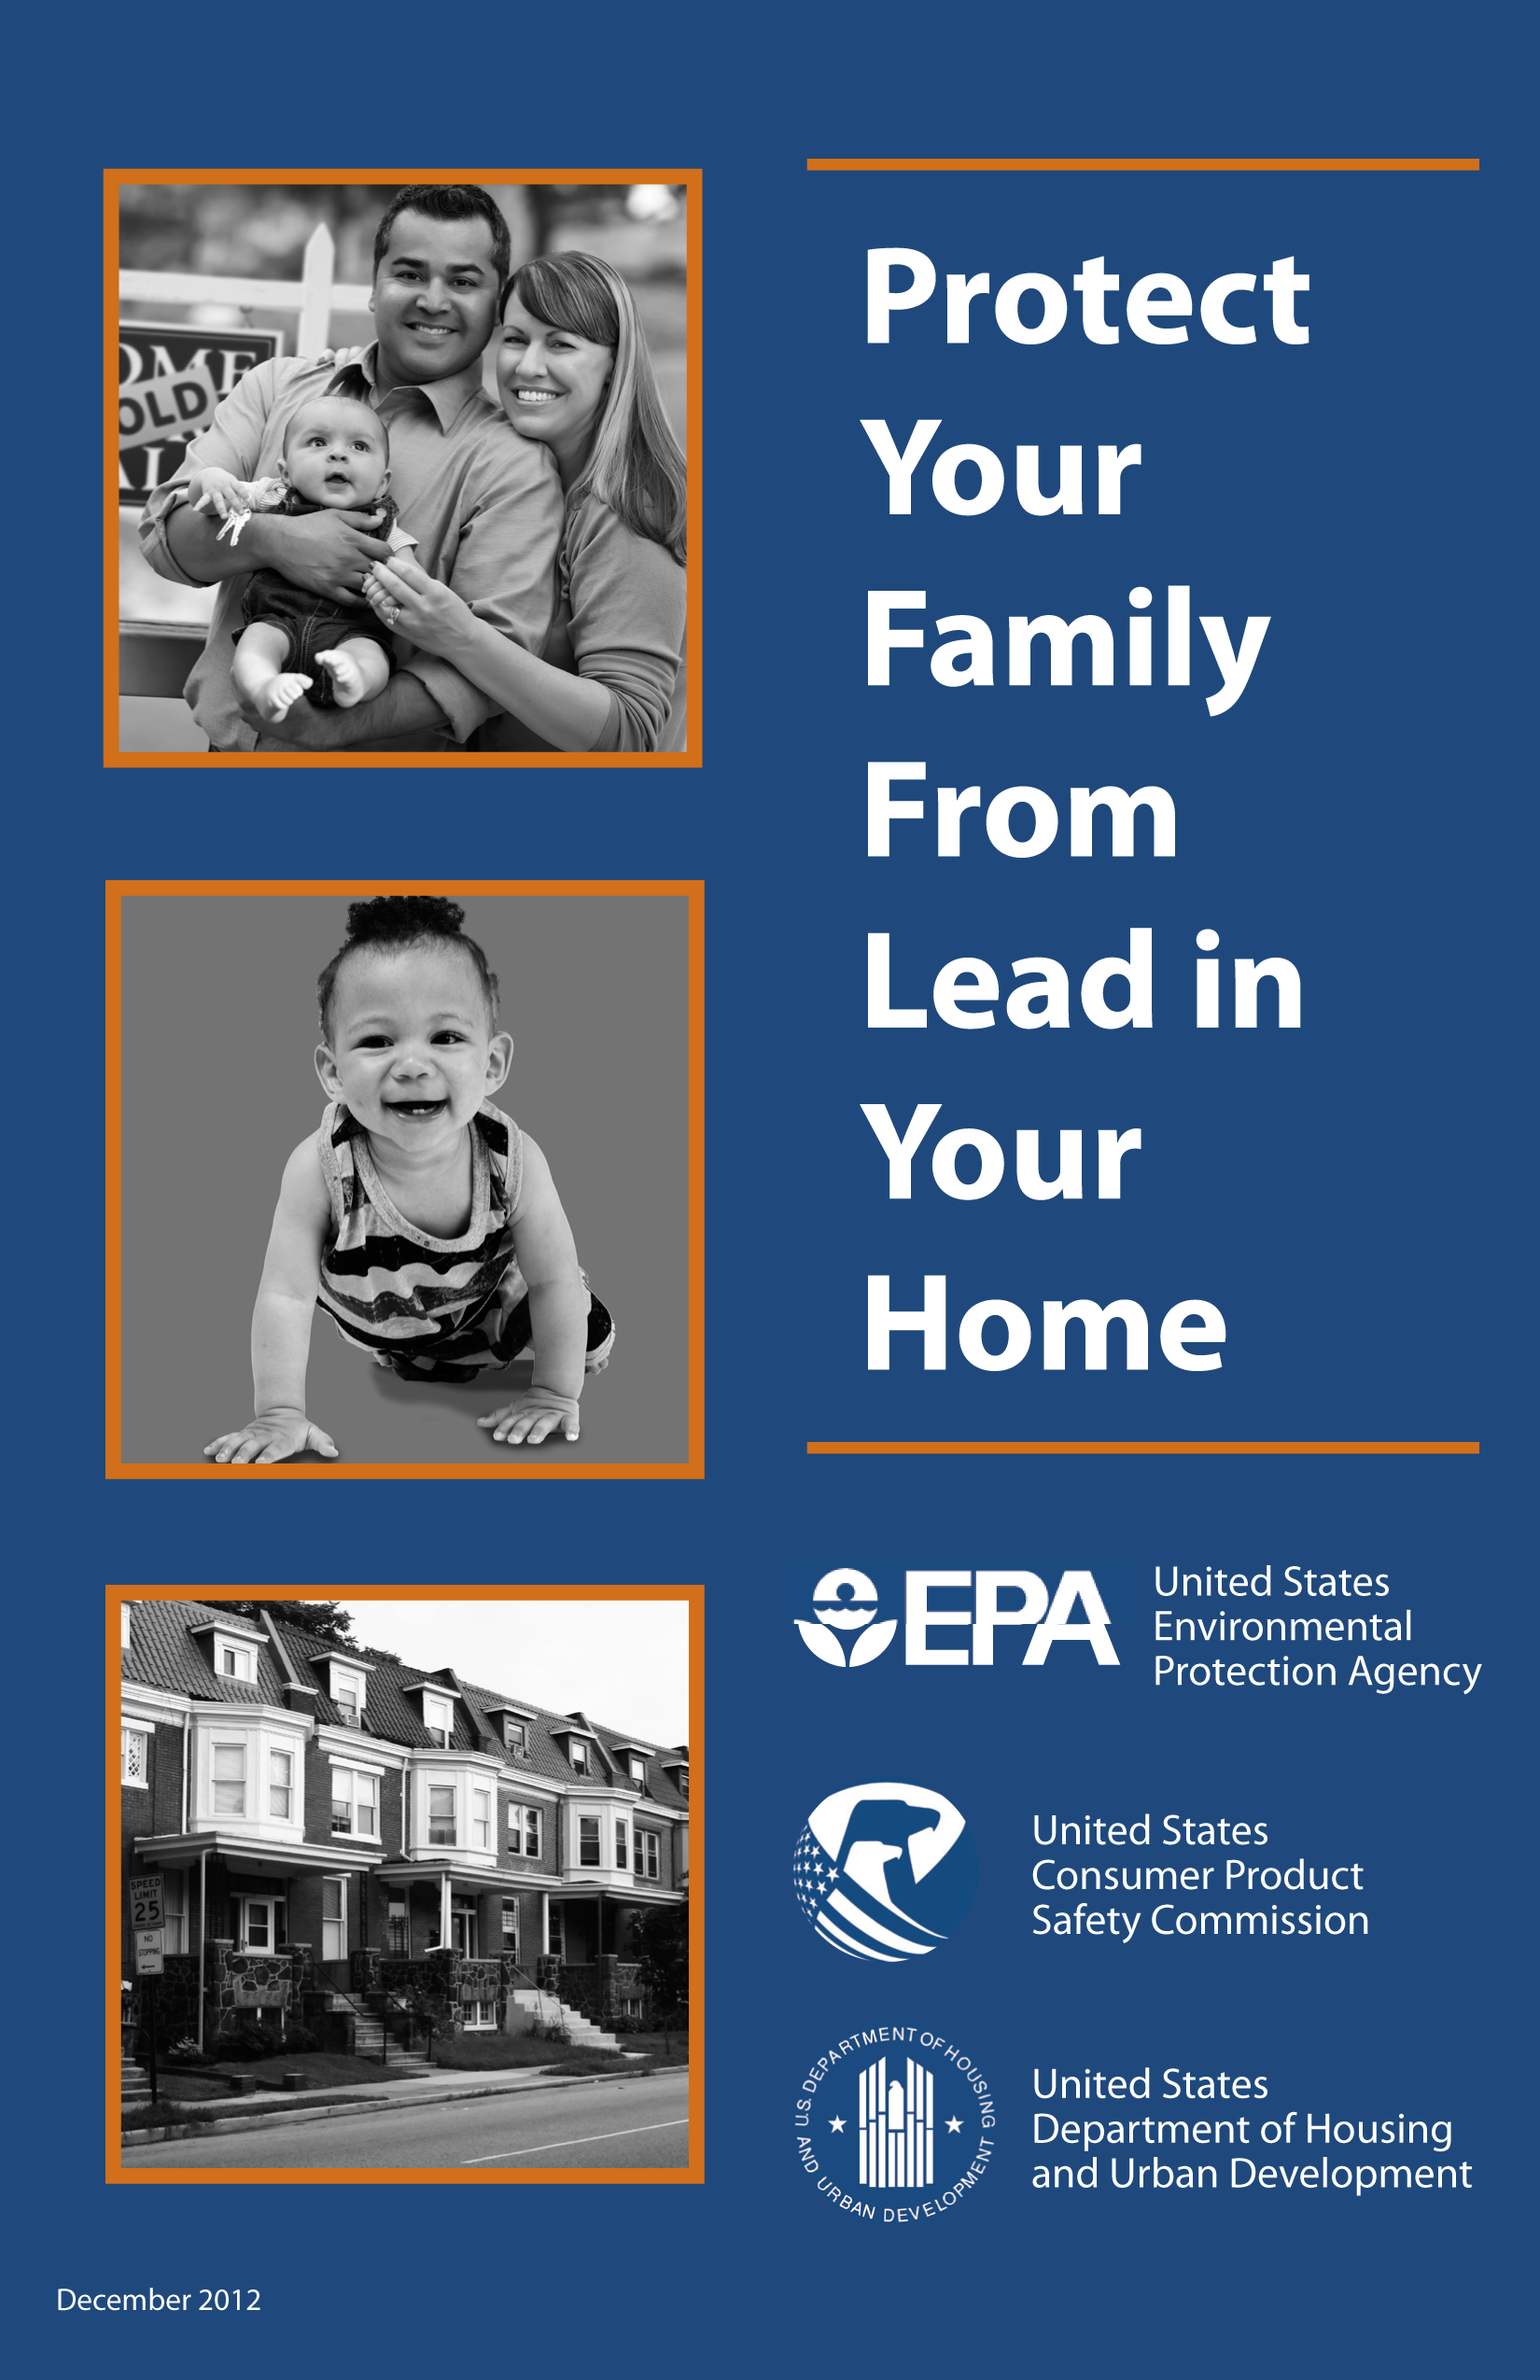 Protect Your Family From Lead